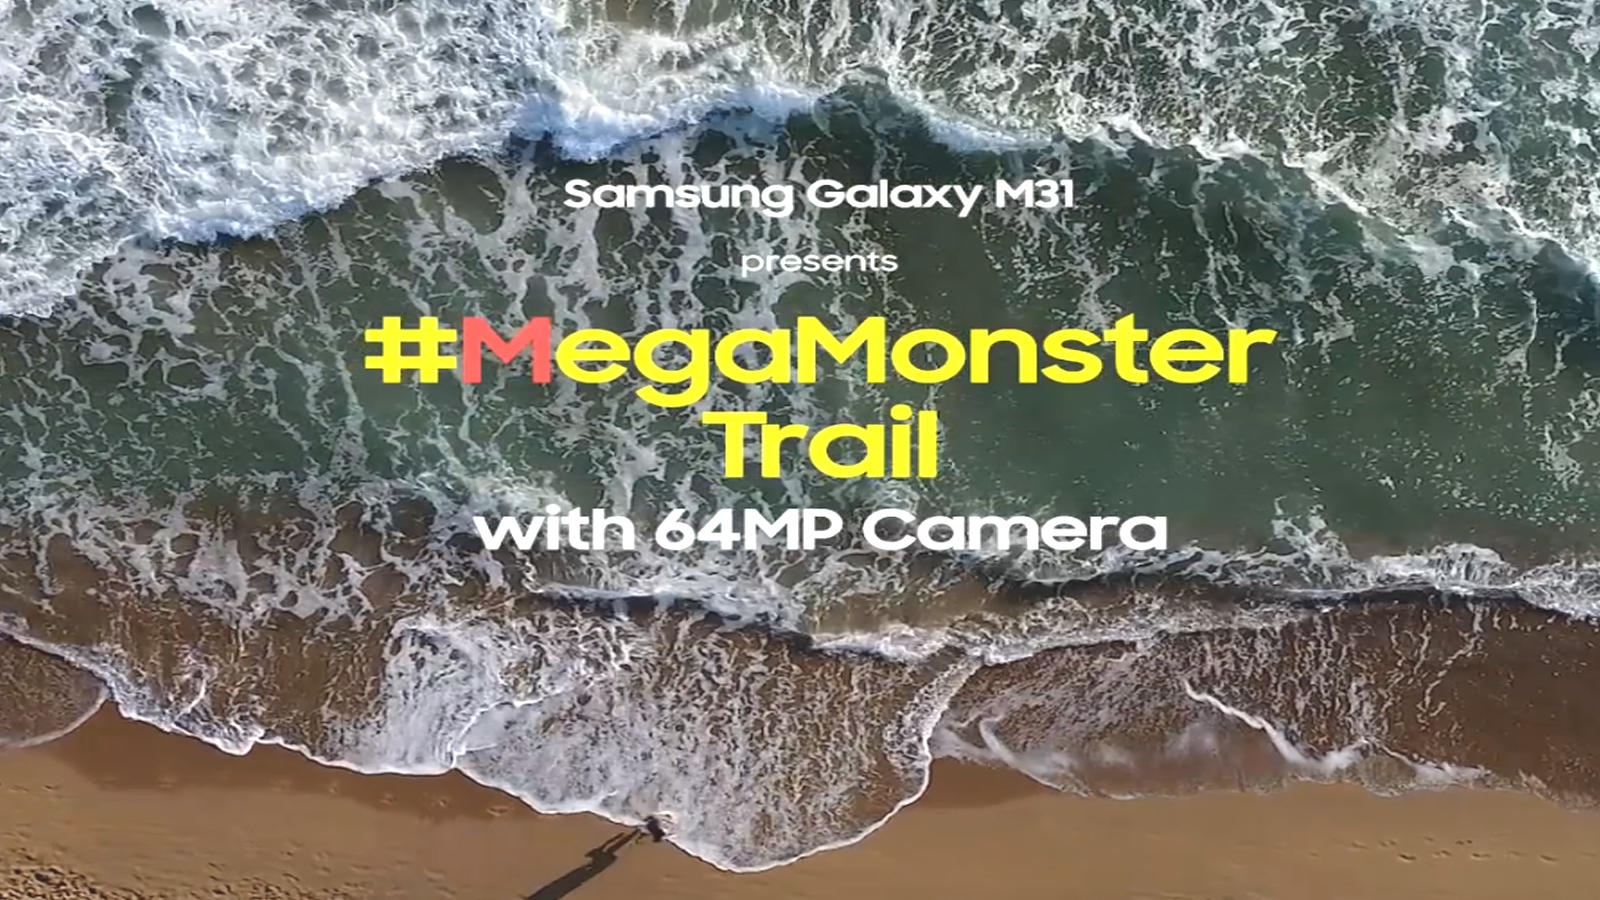 megamonster-trailer